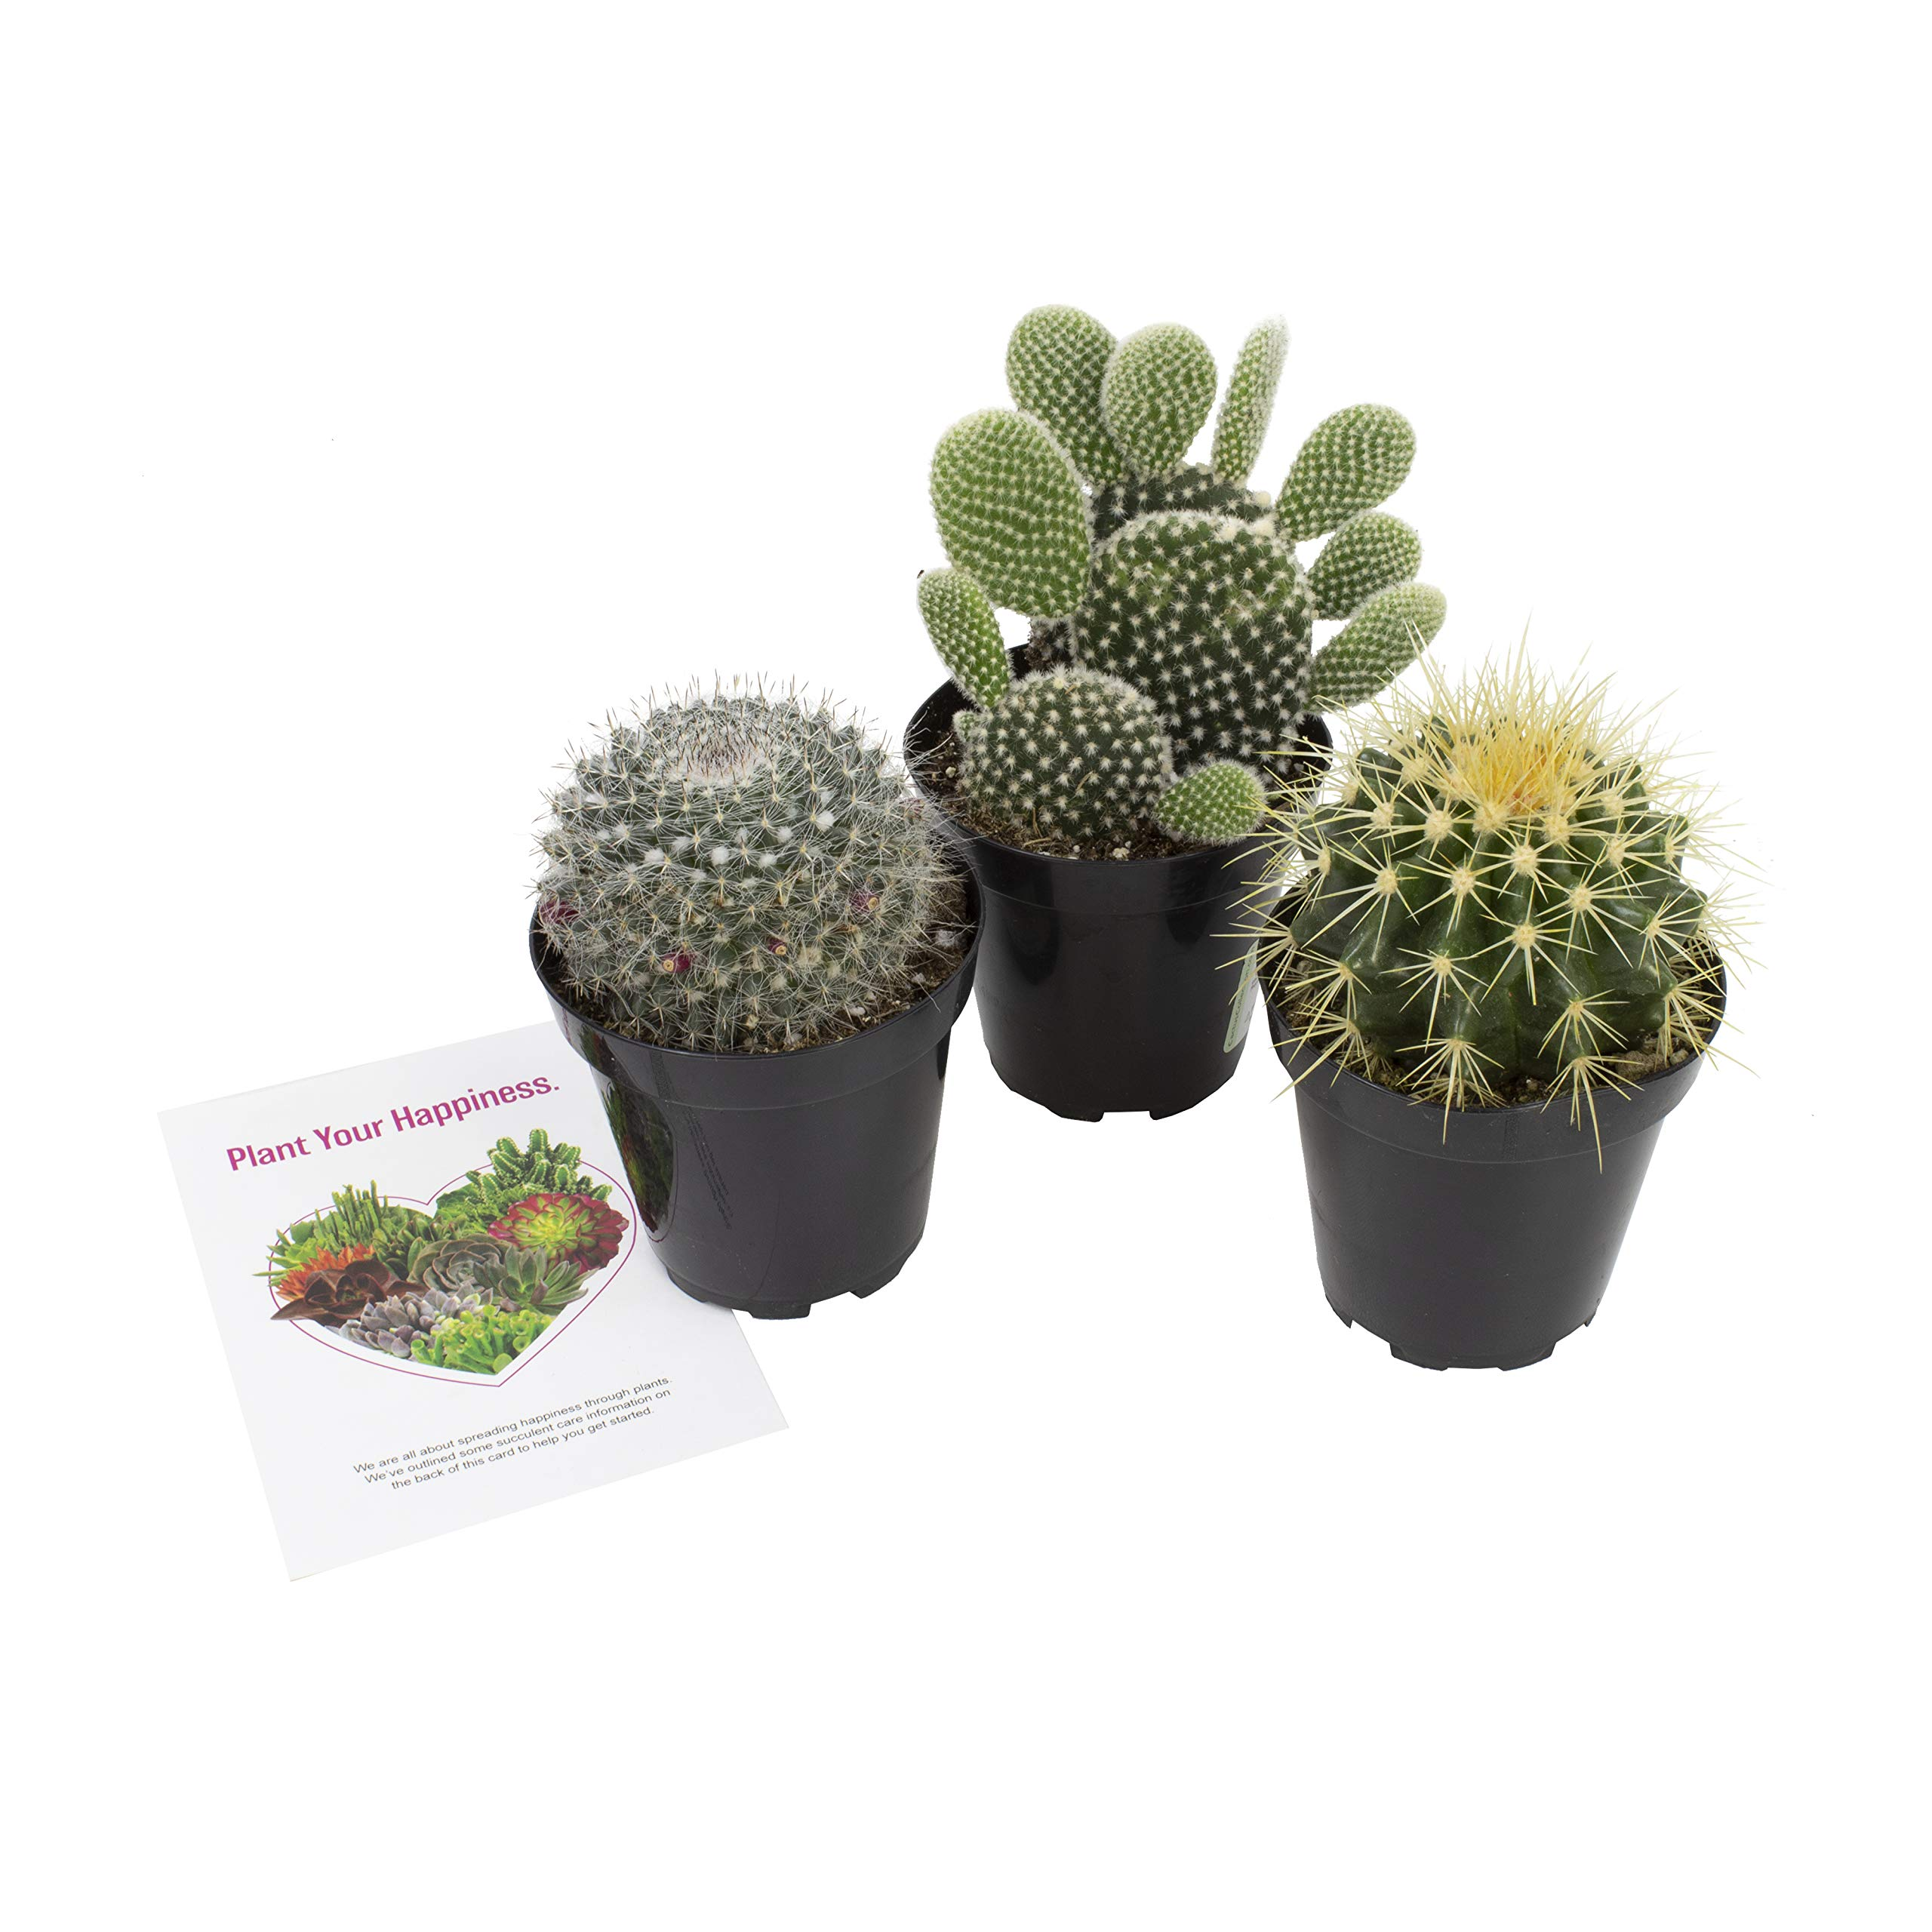 Altman Plants Assorted Live Cactus Collection large for planters or gifts, 3.5'', 3 Pack by Altman Plants (Image #2)